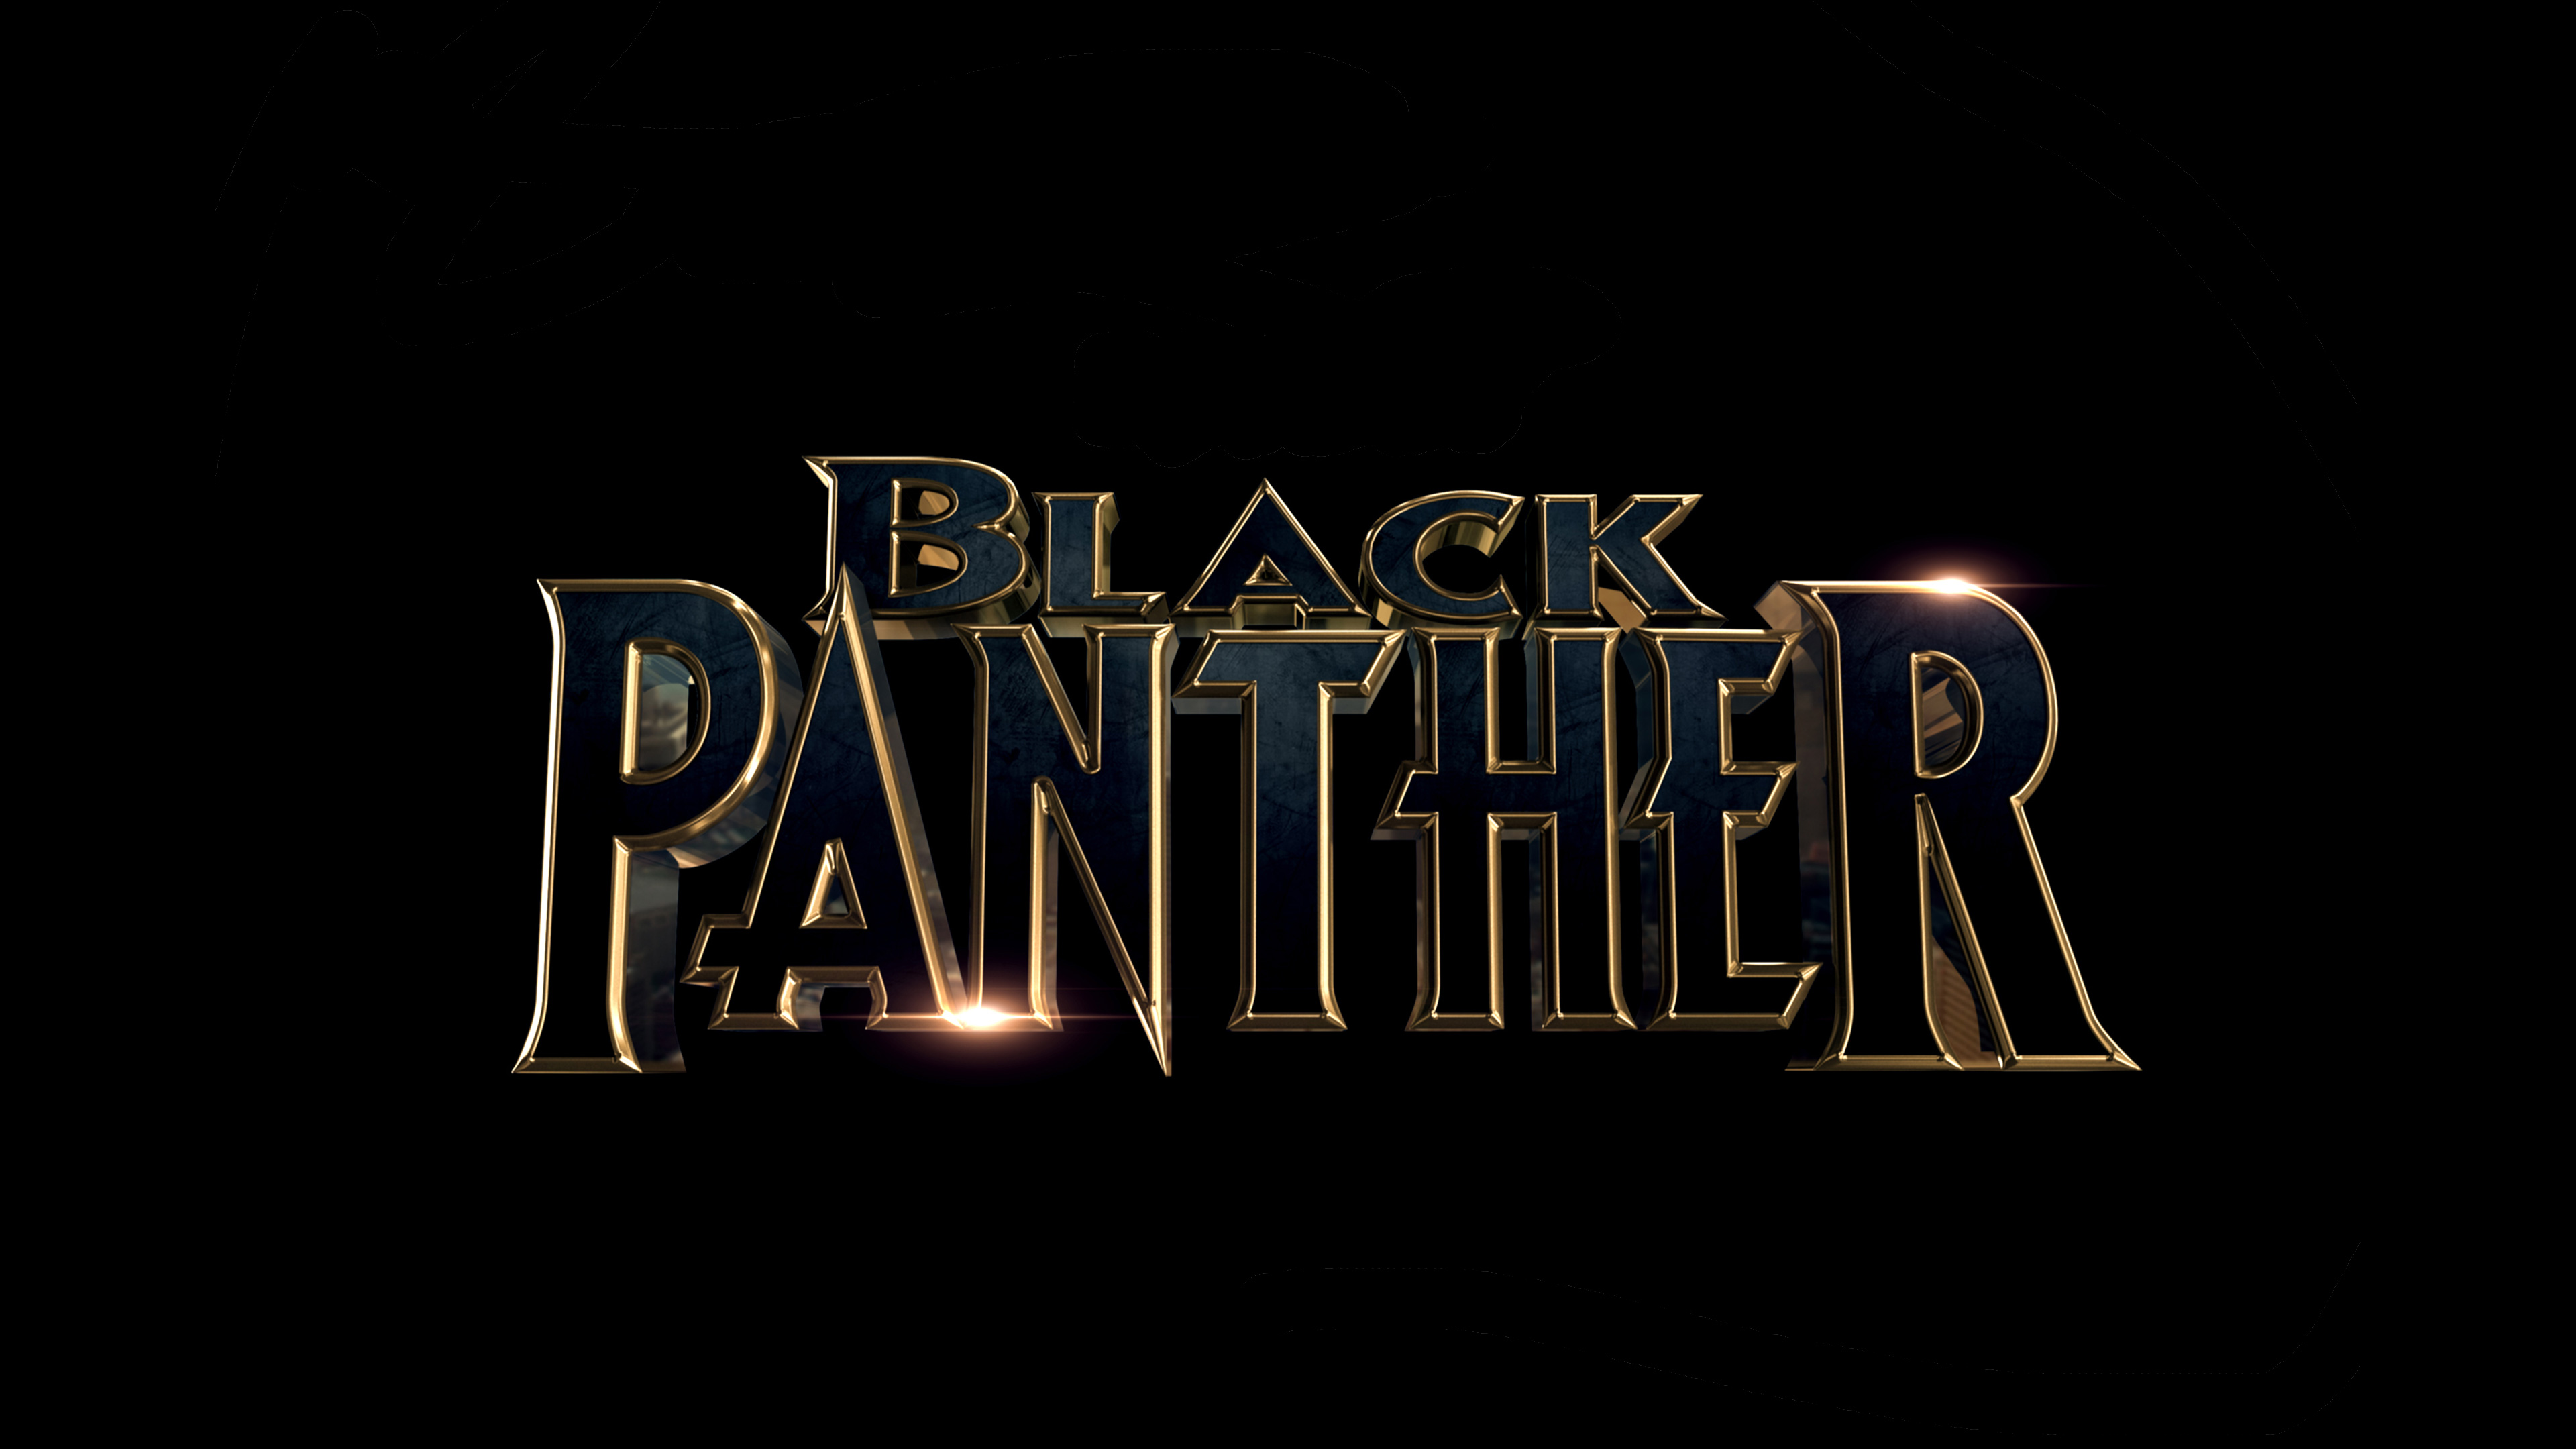 1360x768 Black Panther 2018 Movie Laptop Hd Hd 4k Wallpapers Images